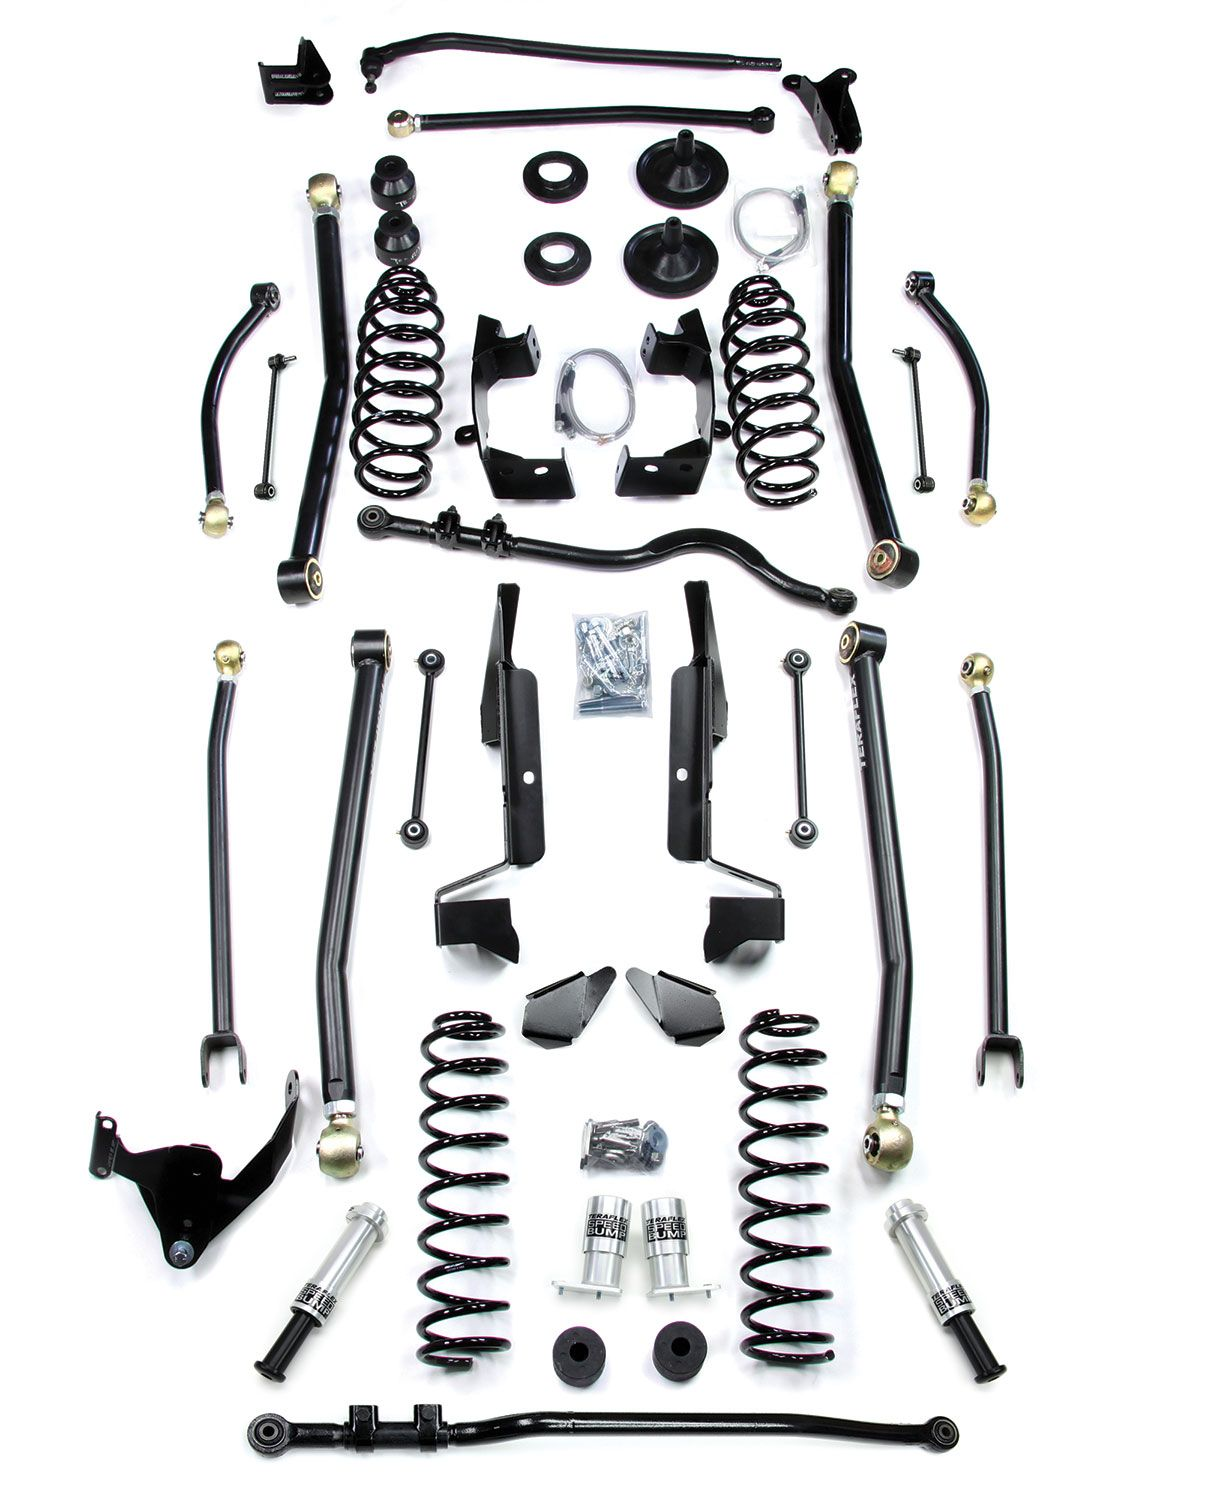 Teraflex Jk 4 Door 6 Elite Lcg Long Flexarm Lift Kit W